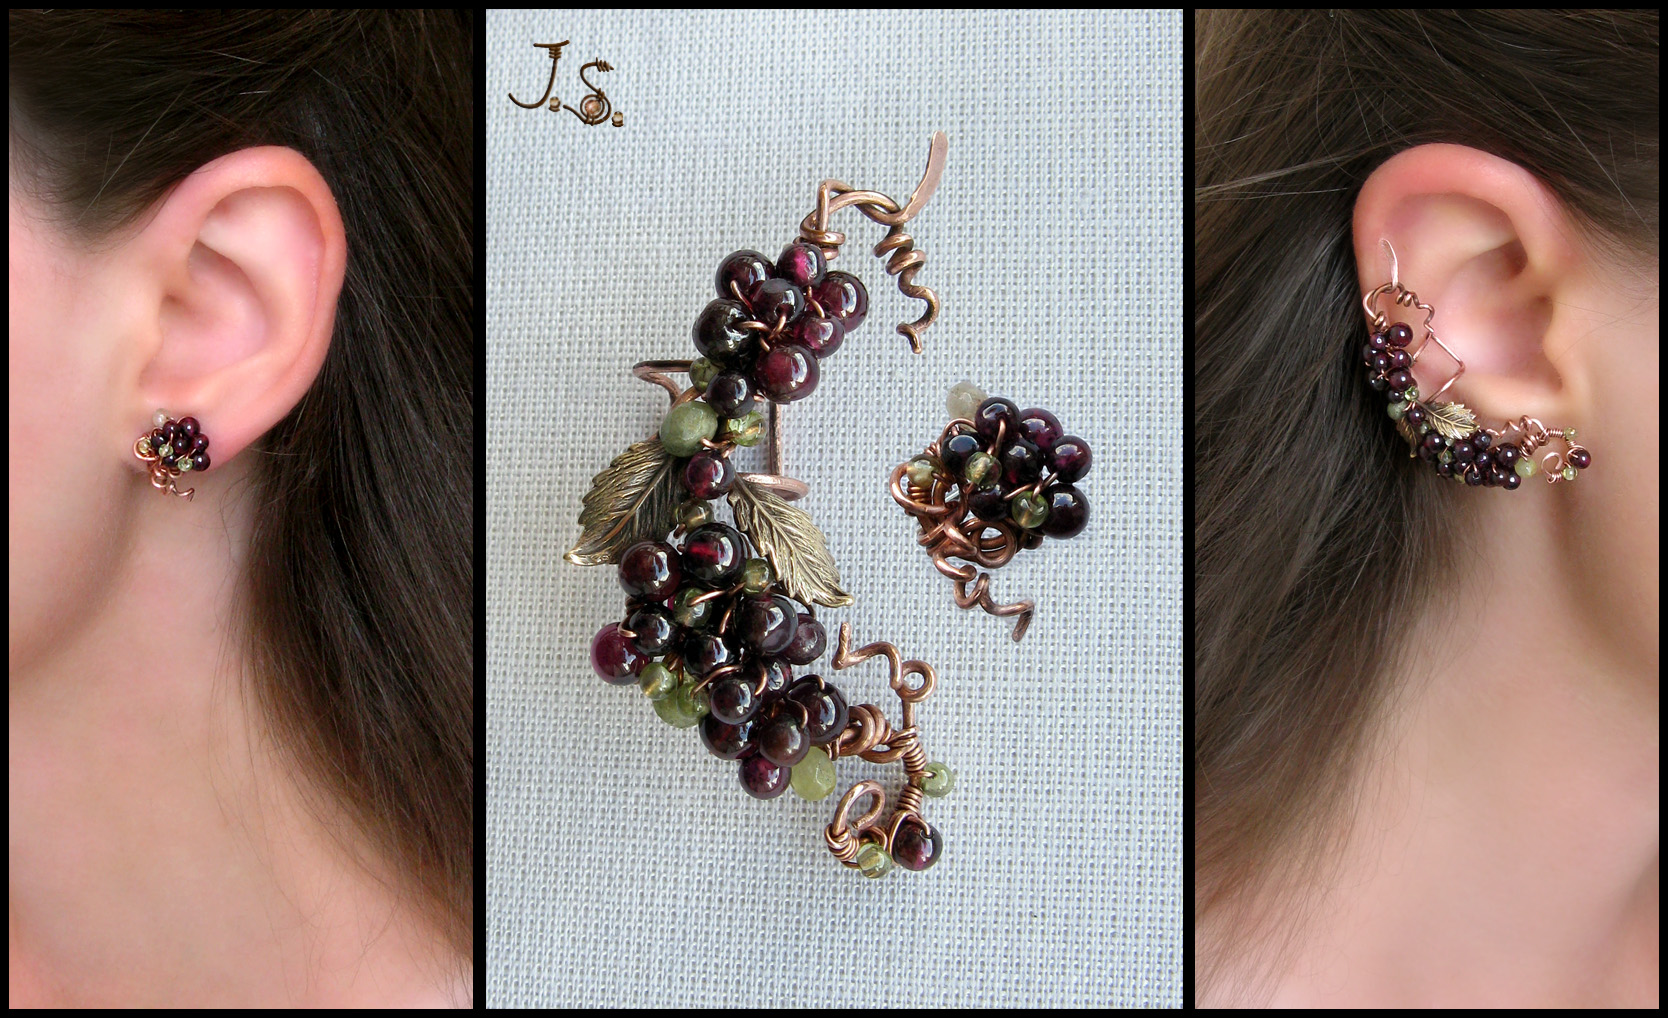 Bunch of berries ear cuff and stud by JSjewelry